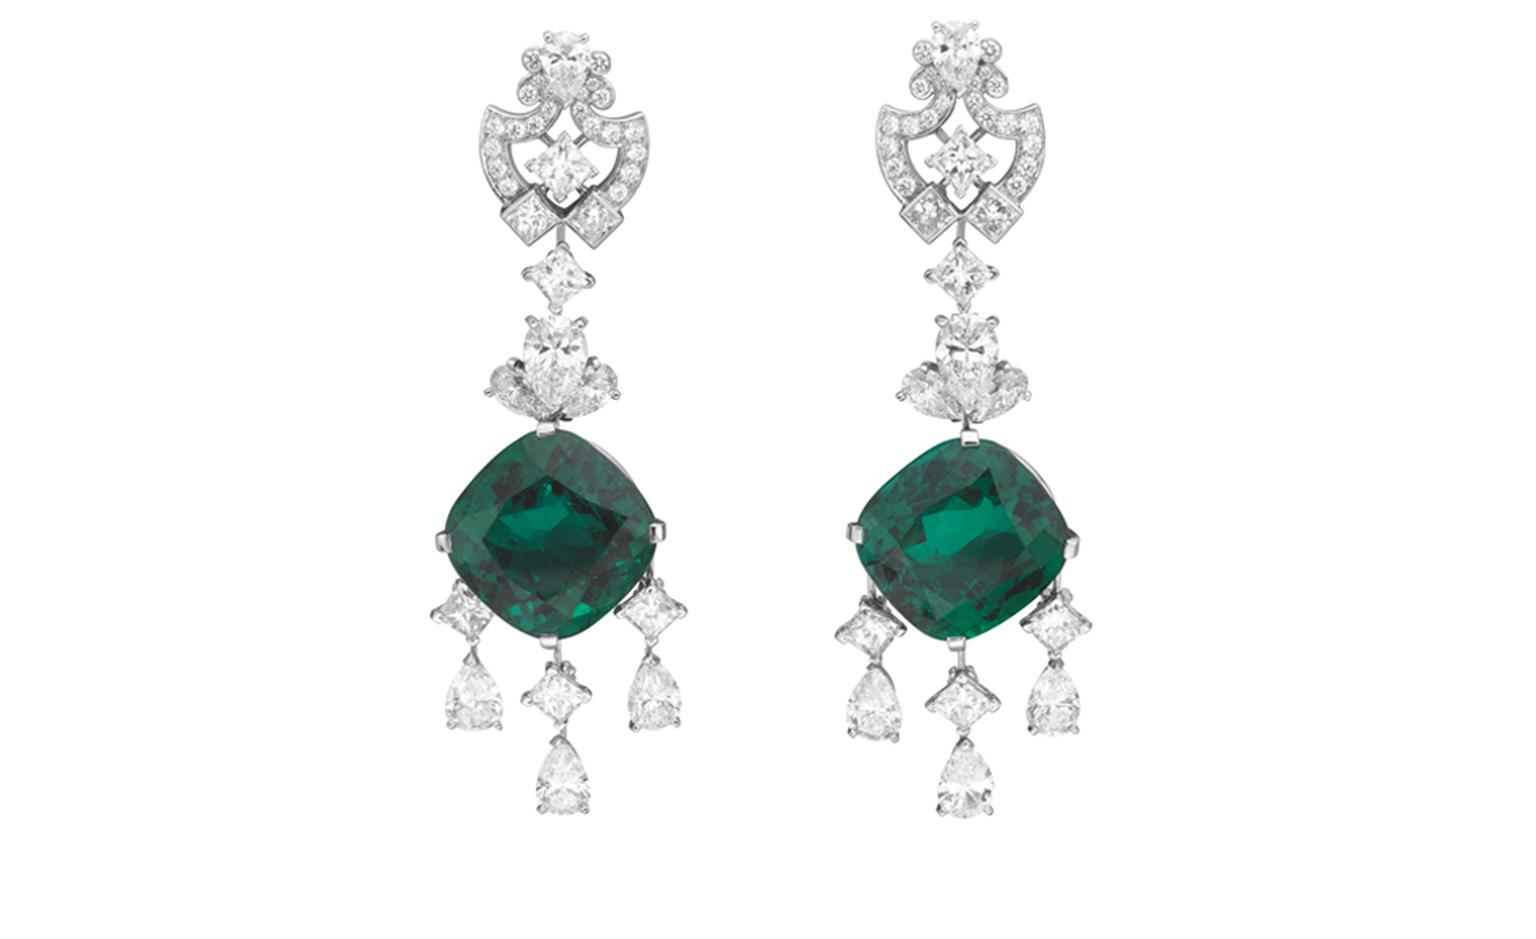 Van Cleef & Arpels, Bals de Légende, Le Bal du Palais d'Hiver, Princess Cygne earrings.